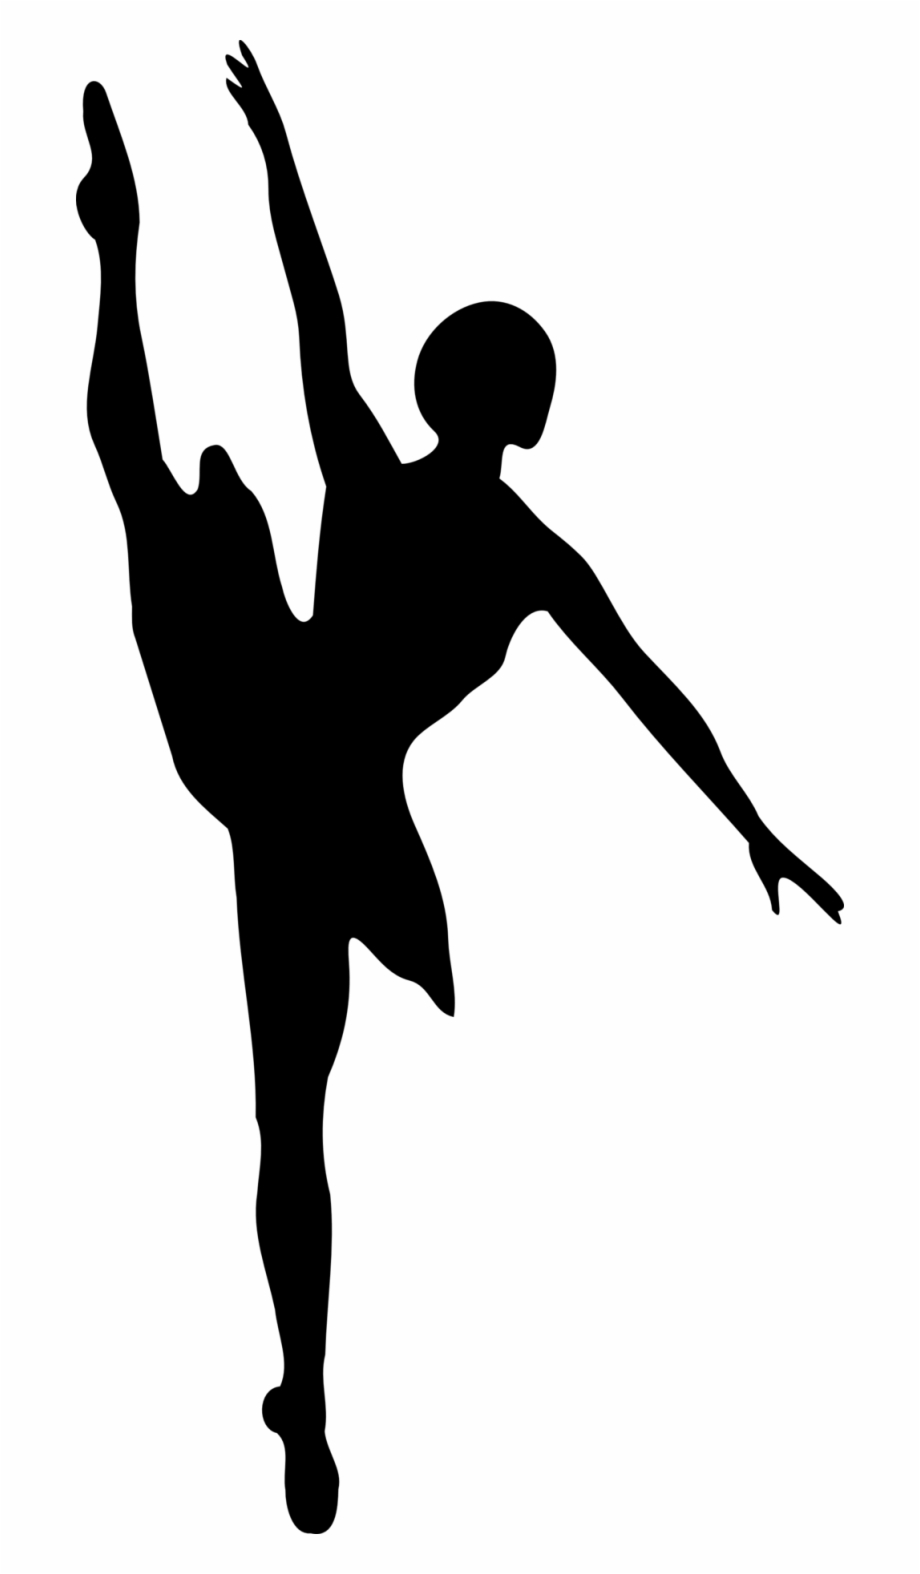 Jpg Transparent Stock Dance Clip Art Black And White.